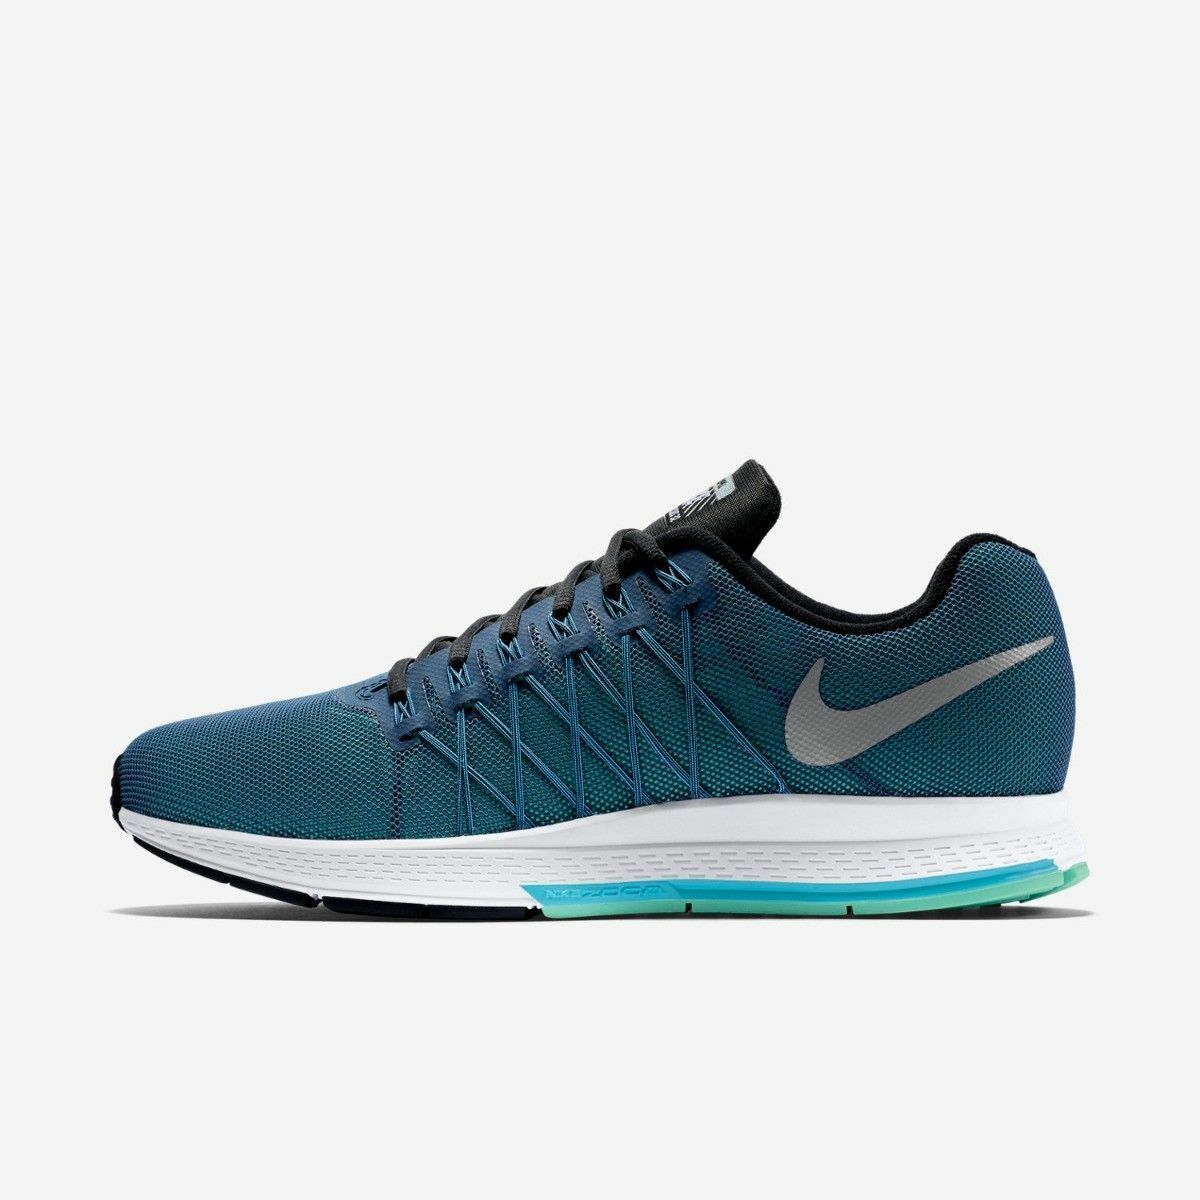 Nike air zoom pegasus 32 806576-400 flash h20